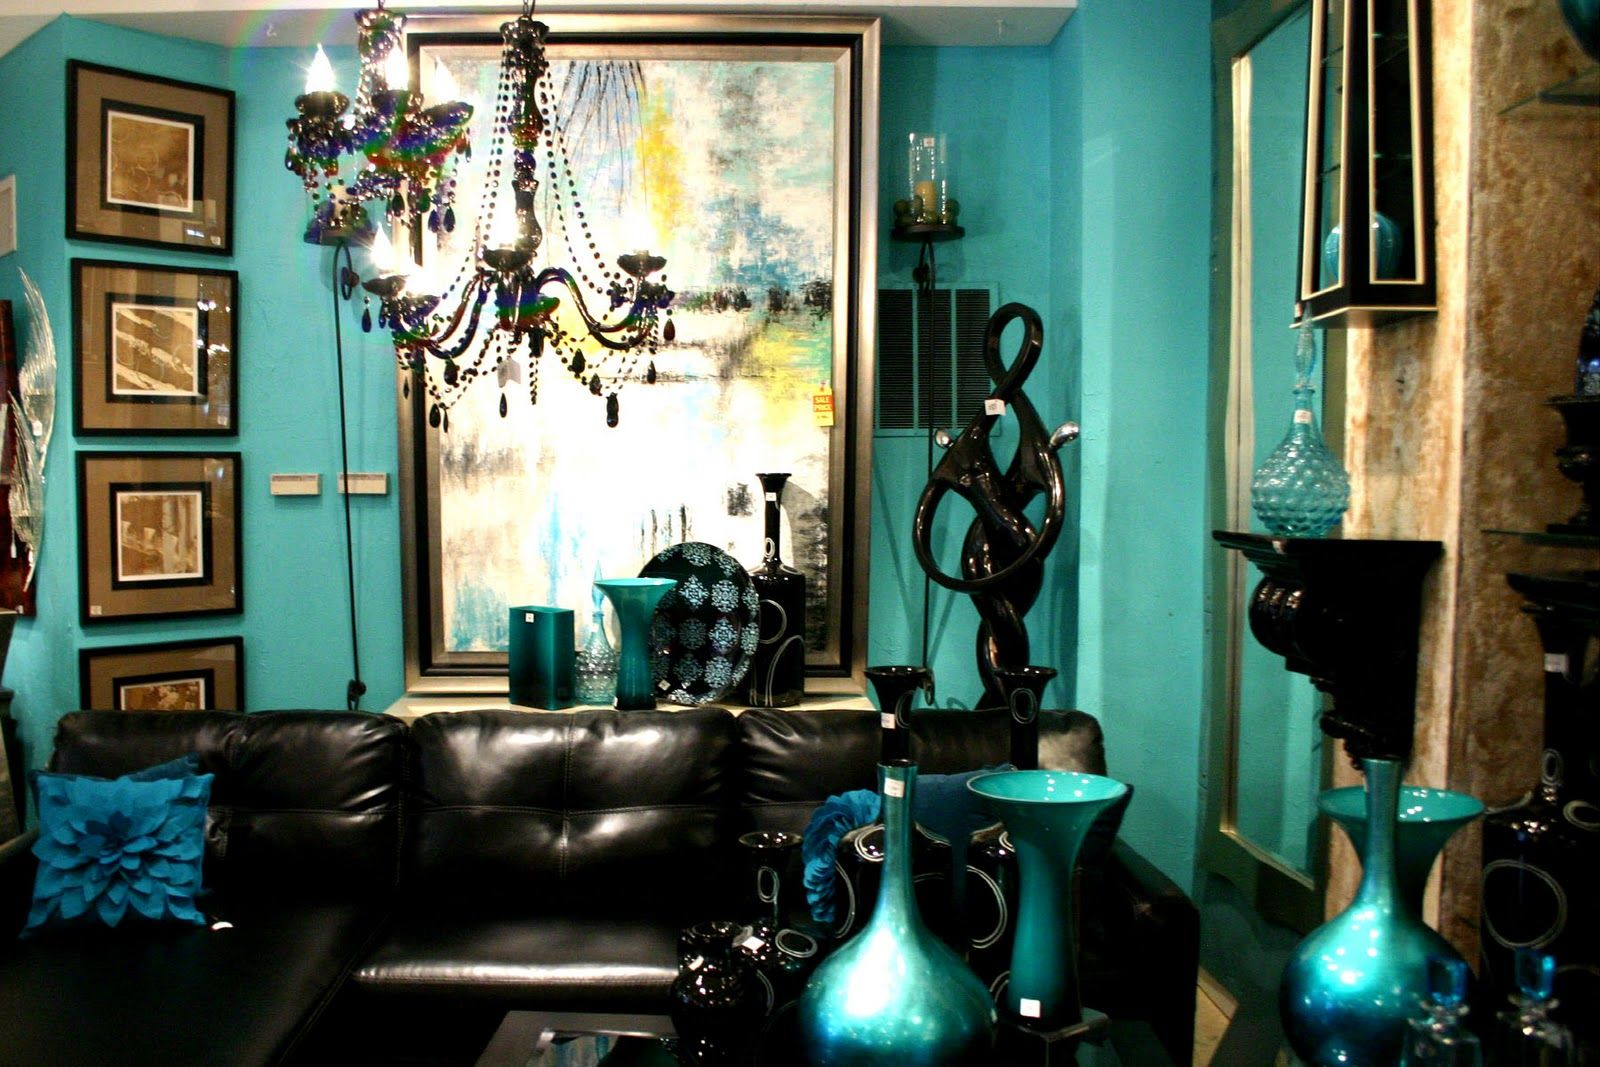 Aqua Living Room Decorating Ideas Gorgeous Lounge Wohnzimmer 20 Gorgeous Turquoise Room Decorations And Designs